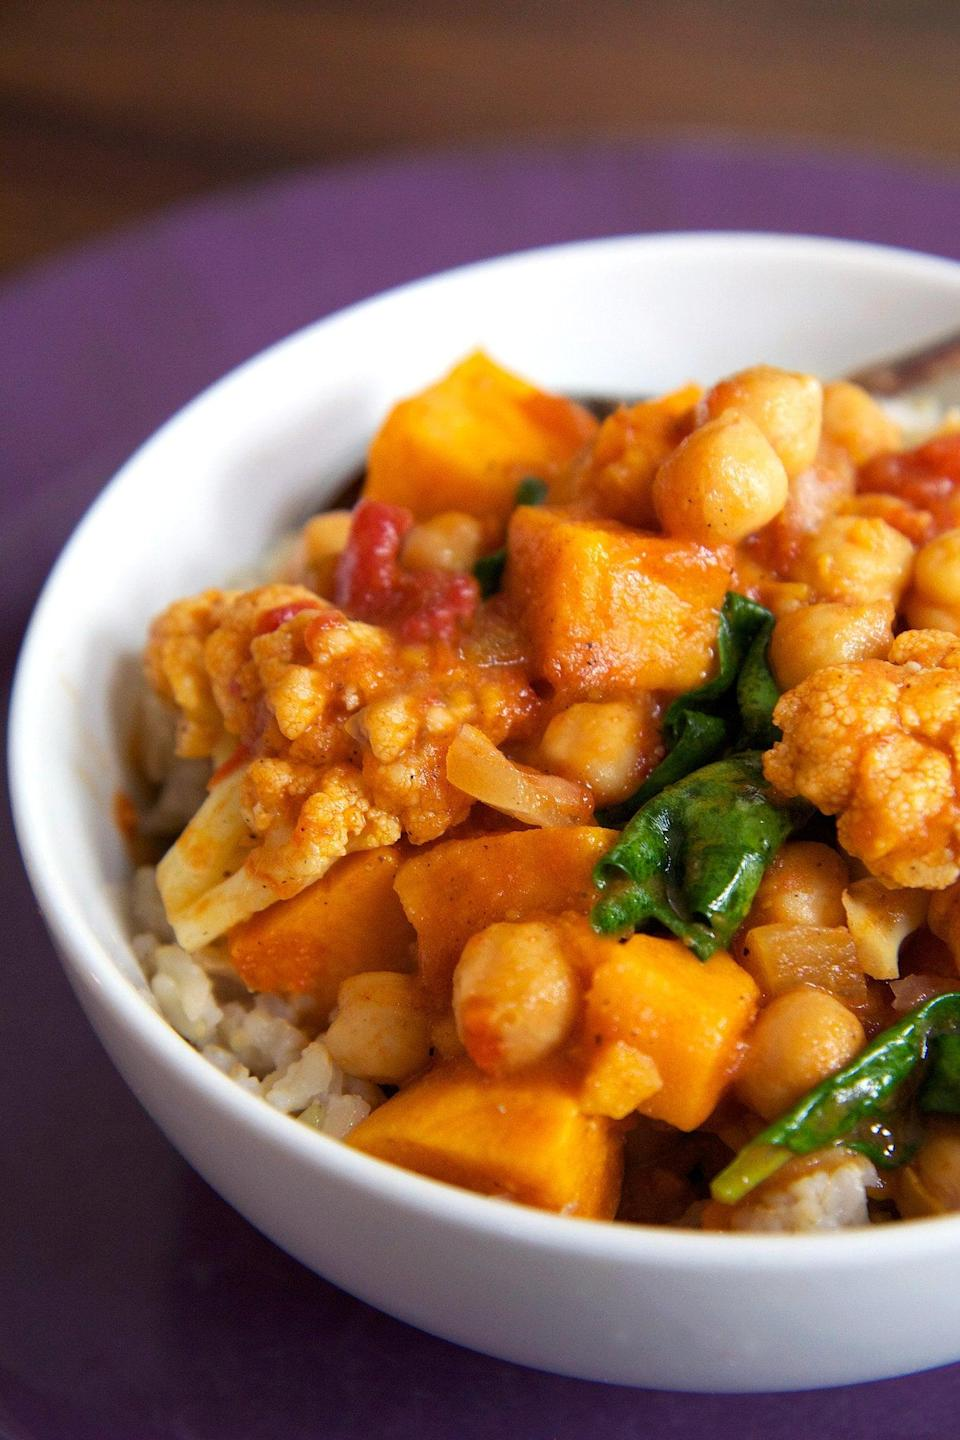 """<p>You can prep this vegan and gluten-free curry recipe in your slow cooker before work and have a restaurant-worthy meal for dinner. Serve it over cauliflower rice.</p> <p><strong>Get the recipe:</strong> <a href=""""https://www.popsugar.com/fitness/Slow-Cooker-Vegan-Chickpea-Curry-34162942"""" class=""""link rapid-noclick-resp"""" rel=""""nofollow noopener"""" target=""""_blank"""" data-ylk=""""slk:chickpea and sweet potato curry recipe"""">chickpea and sweet potato curry recipe</a></p>"""